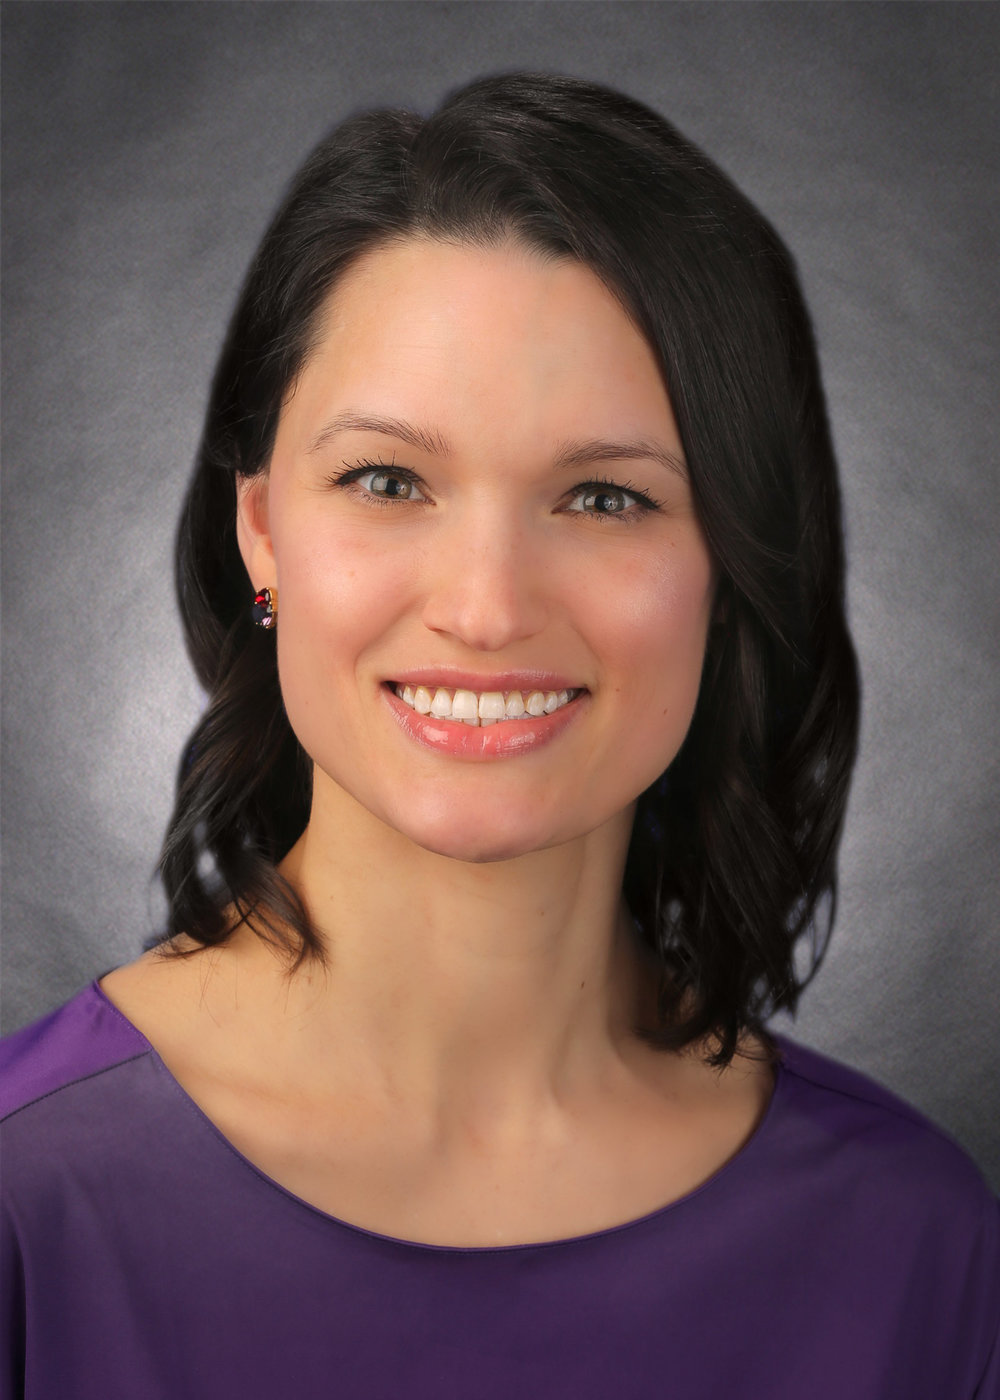 Welcome Dermatologist, Dr. Caitlin Pauly. For appointments, call 620.669.2500